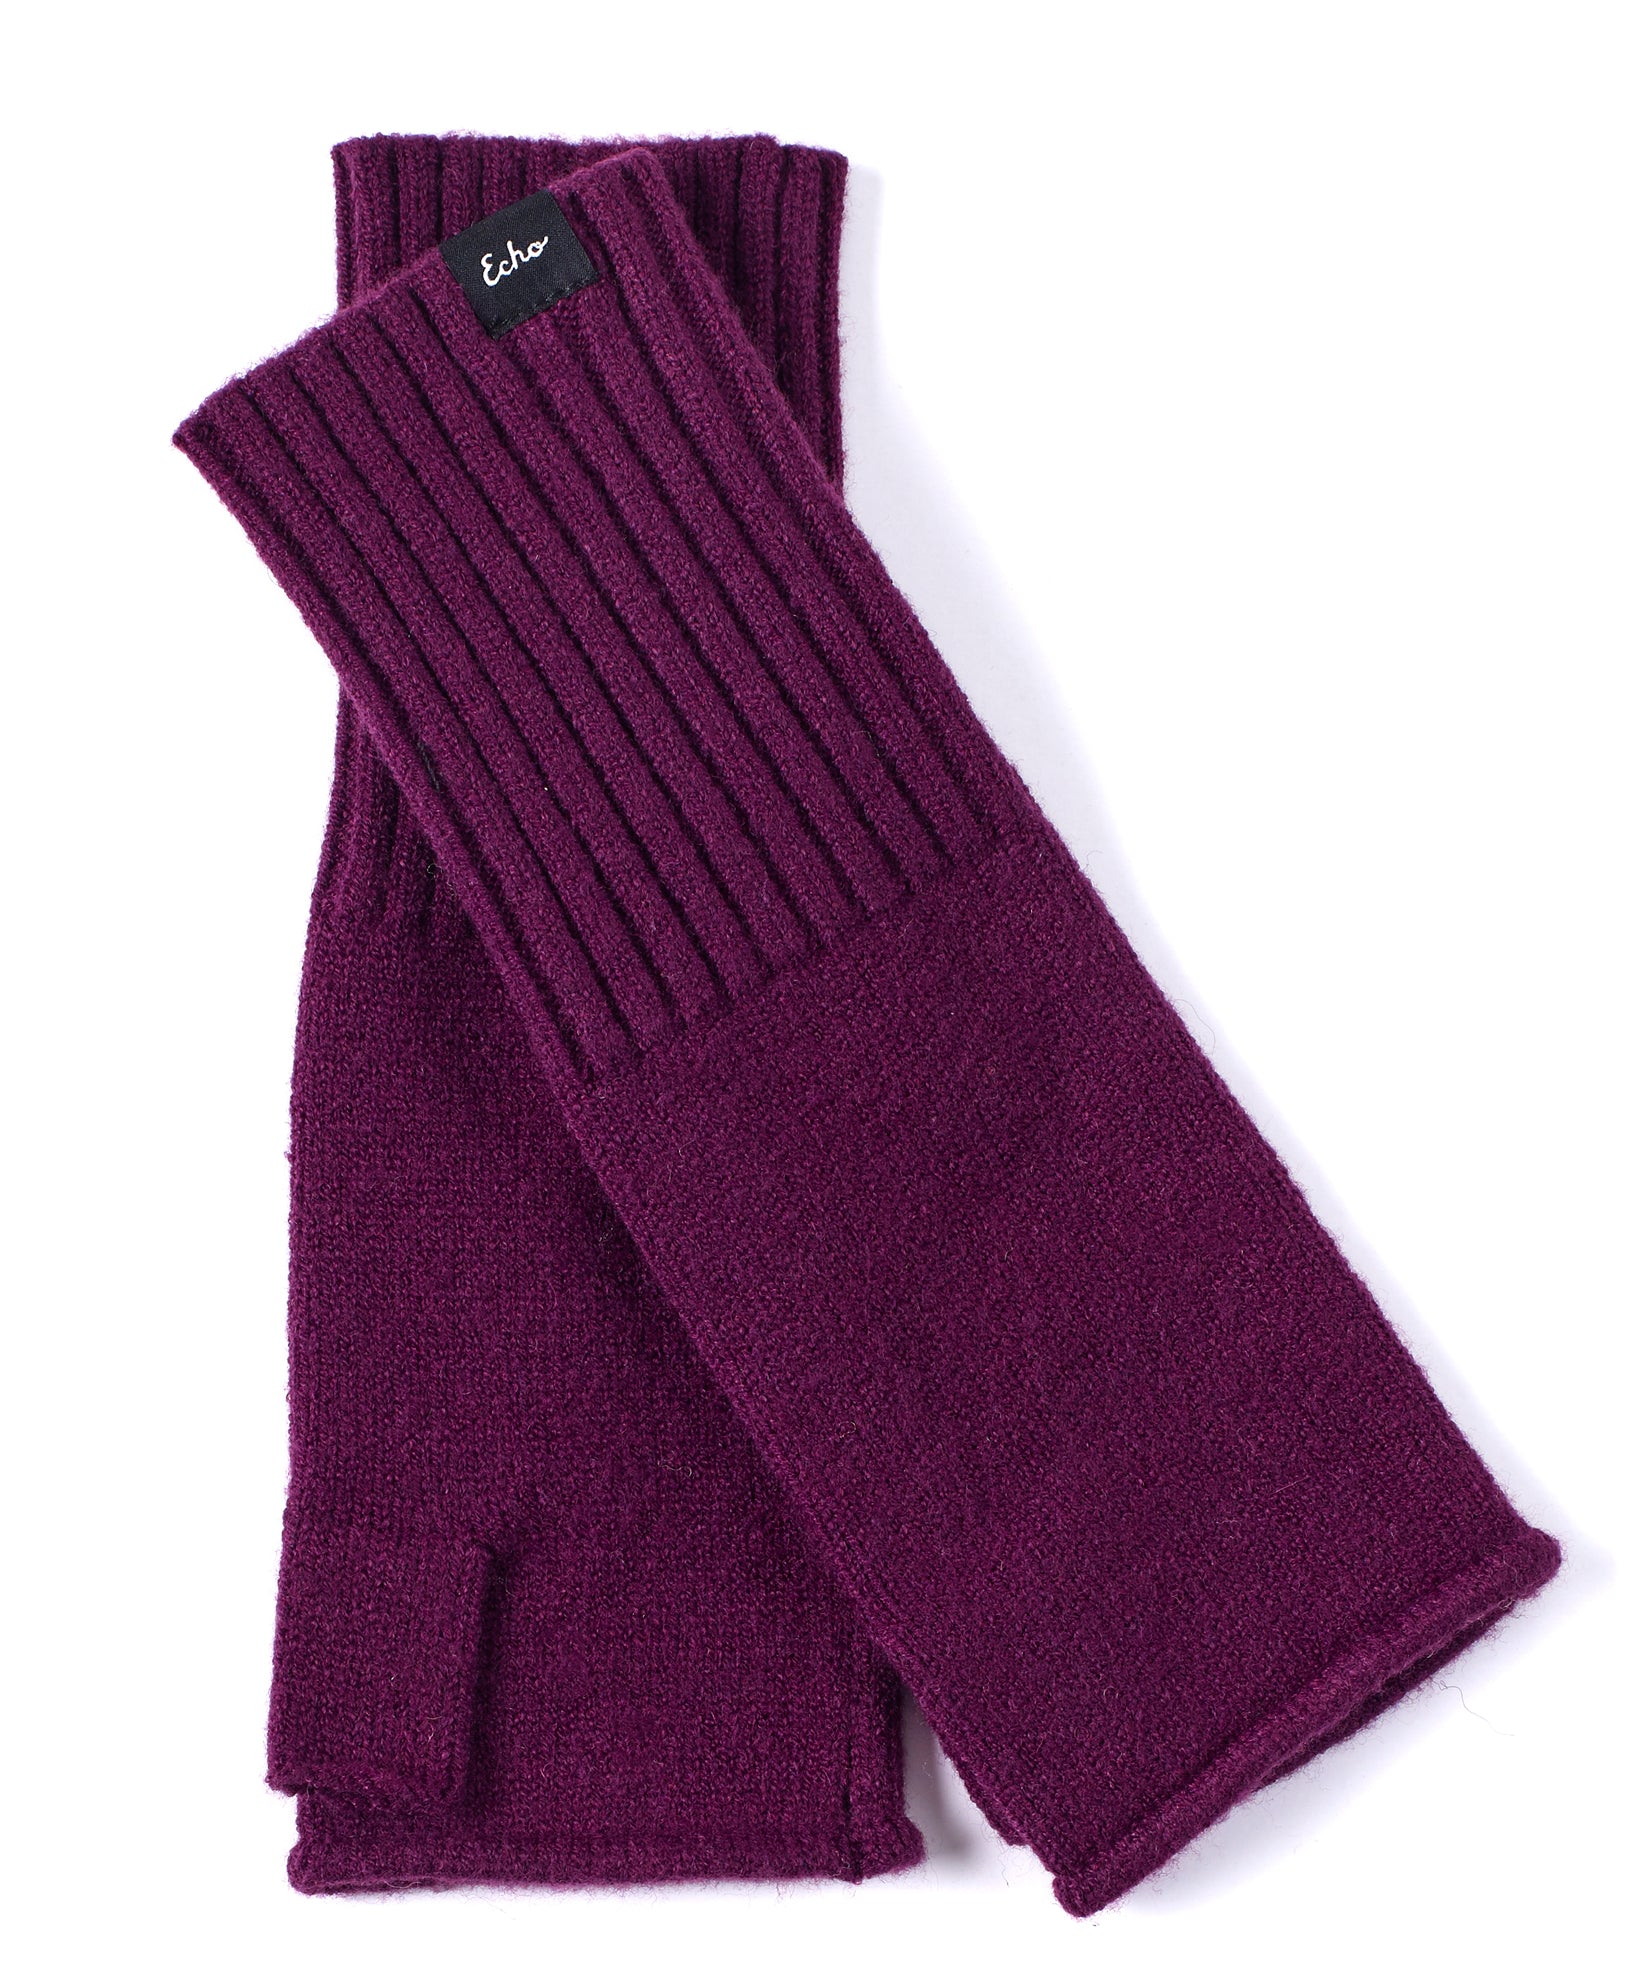 Pickled Beet - Active Stretch Fingerless Glove